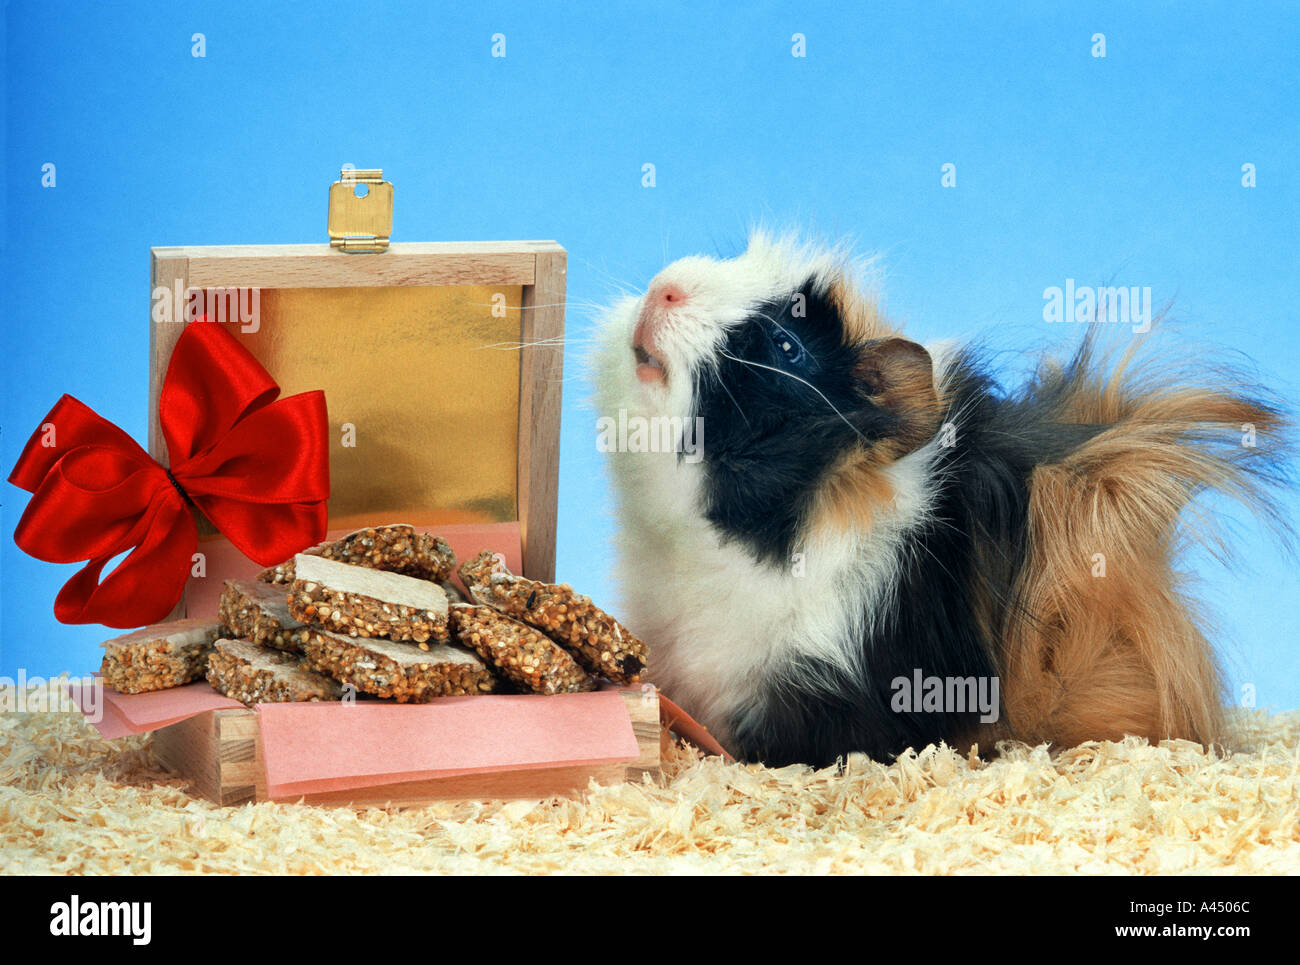 A Present For The Guinea Pig Shortbread Biscuit Cookie Happy Birthday Guinea Pig Shortbread Biscuit Cookies Cavy Cavia Rodent P Stock Photo Alamy